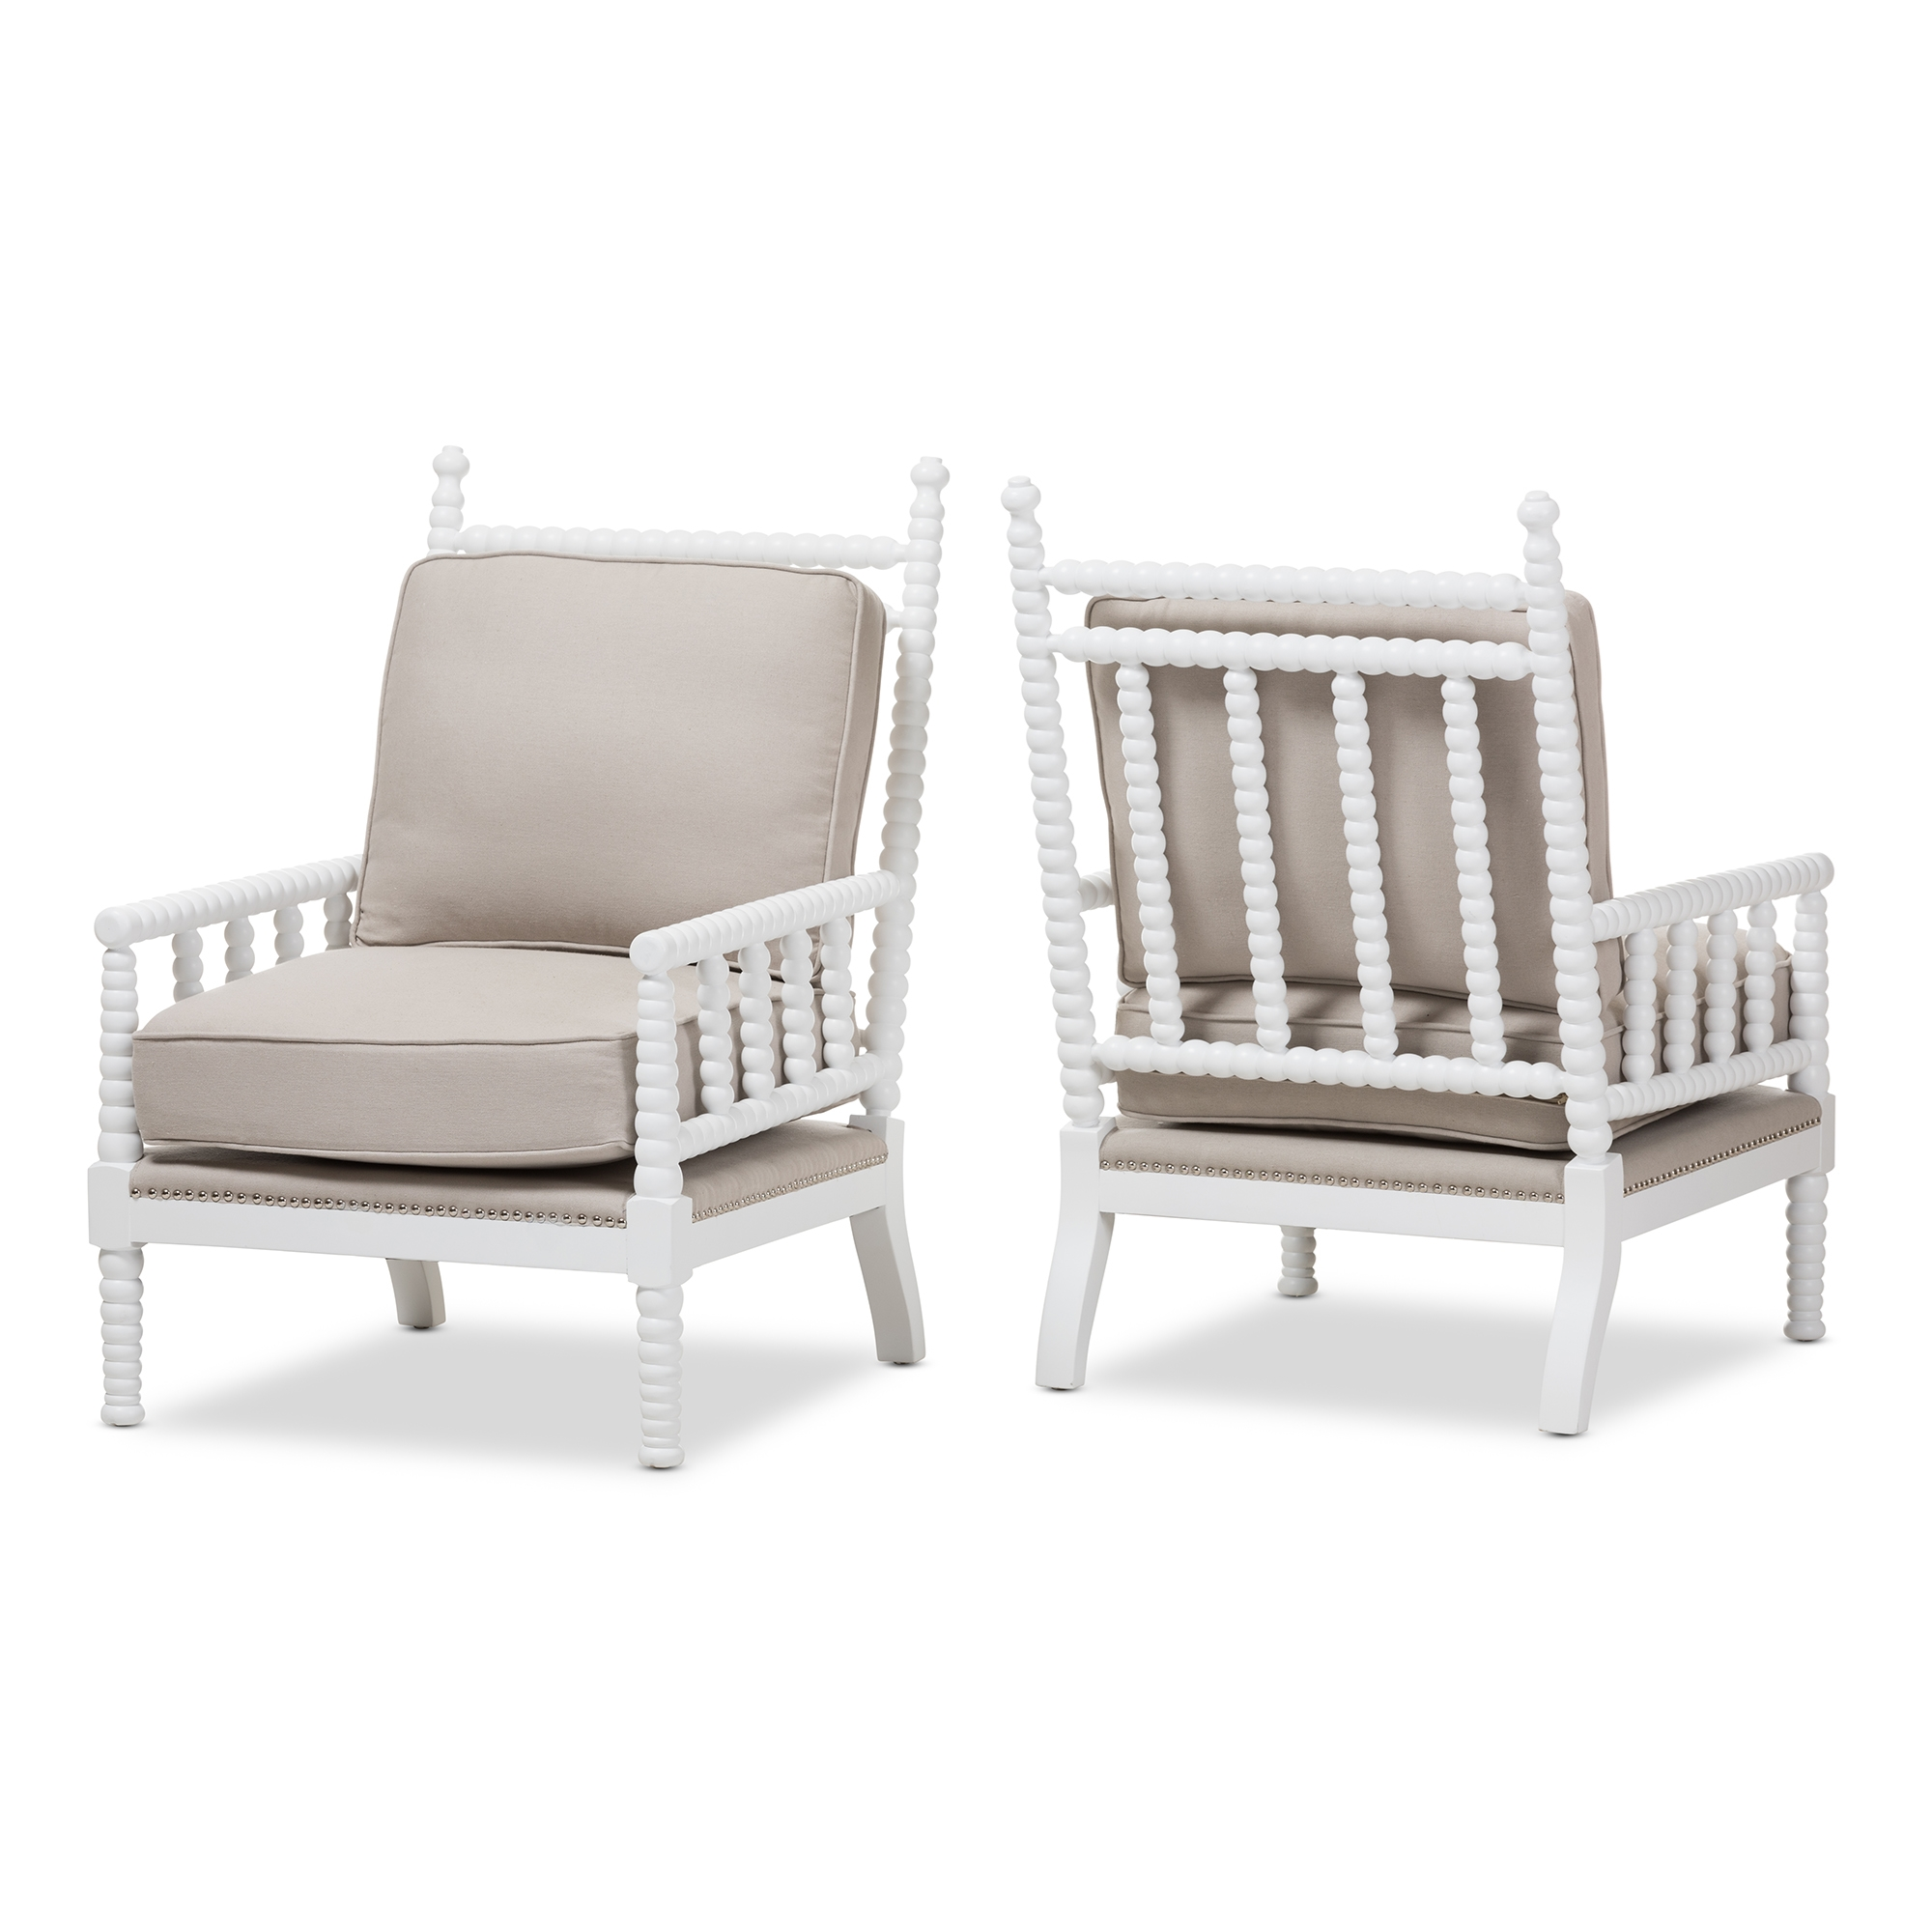 Baxton studio hillary modern and contemporary beige fabric upholstered and white finish wood spindle back accent chair set of 2